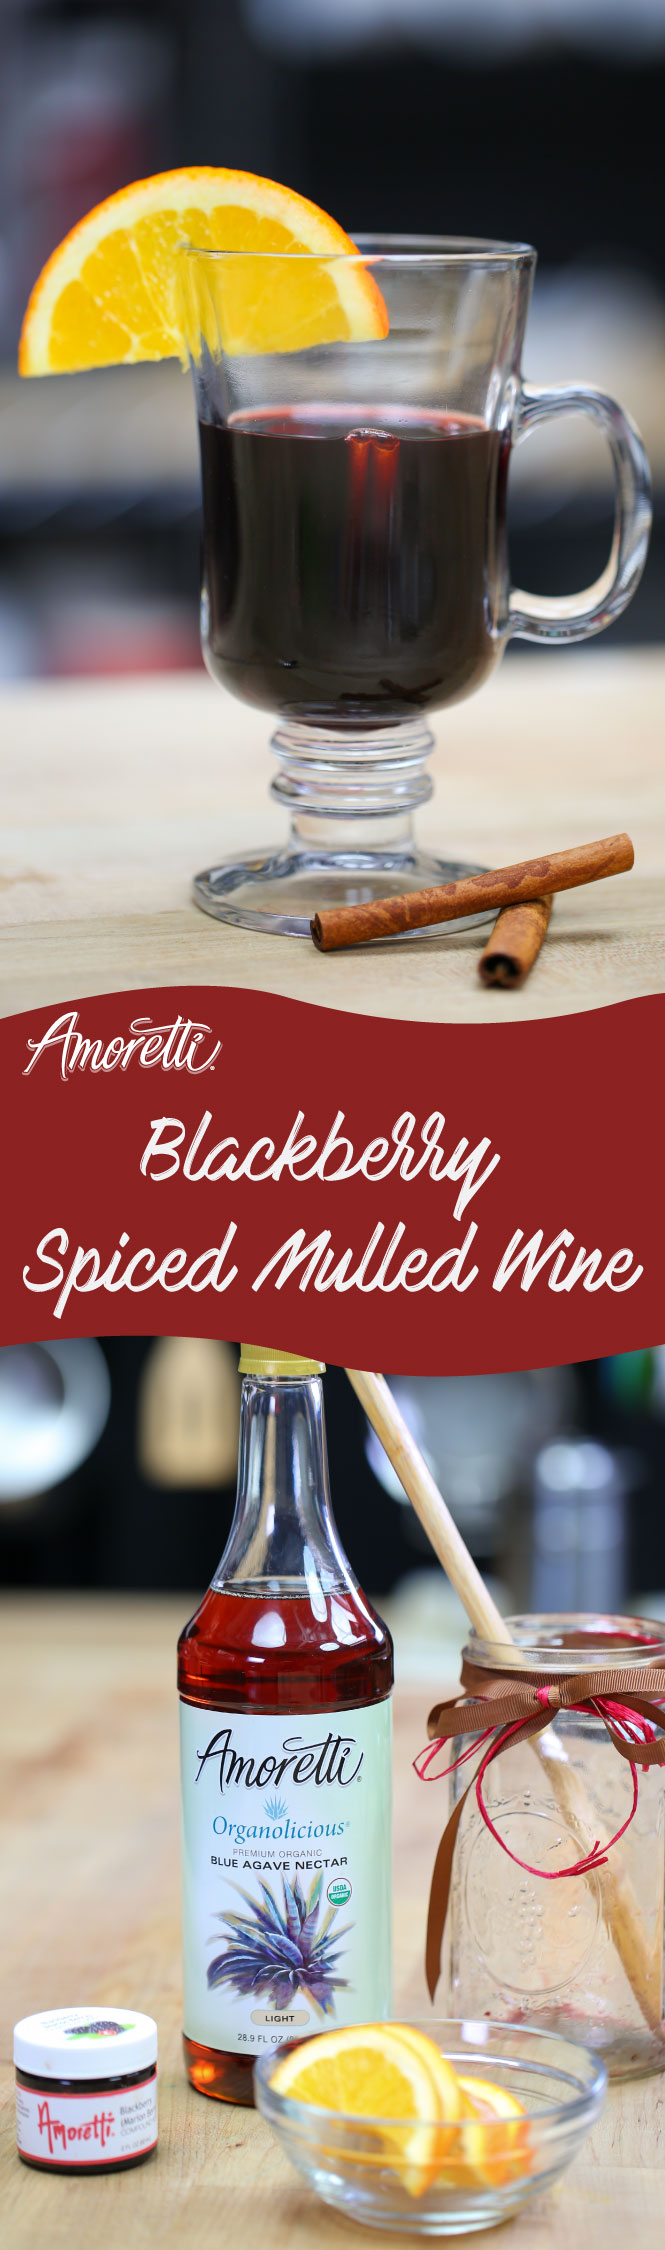 Our Blackberry Spiced Mulled Wine not only tastes delicious but will warm you up on those cold winter nights!